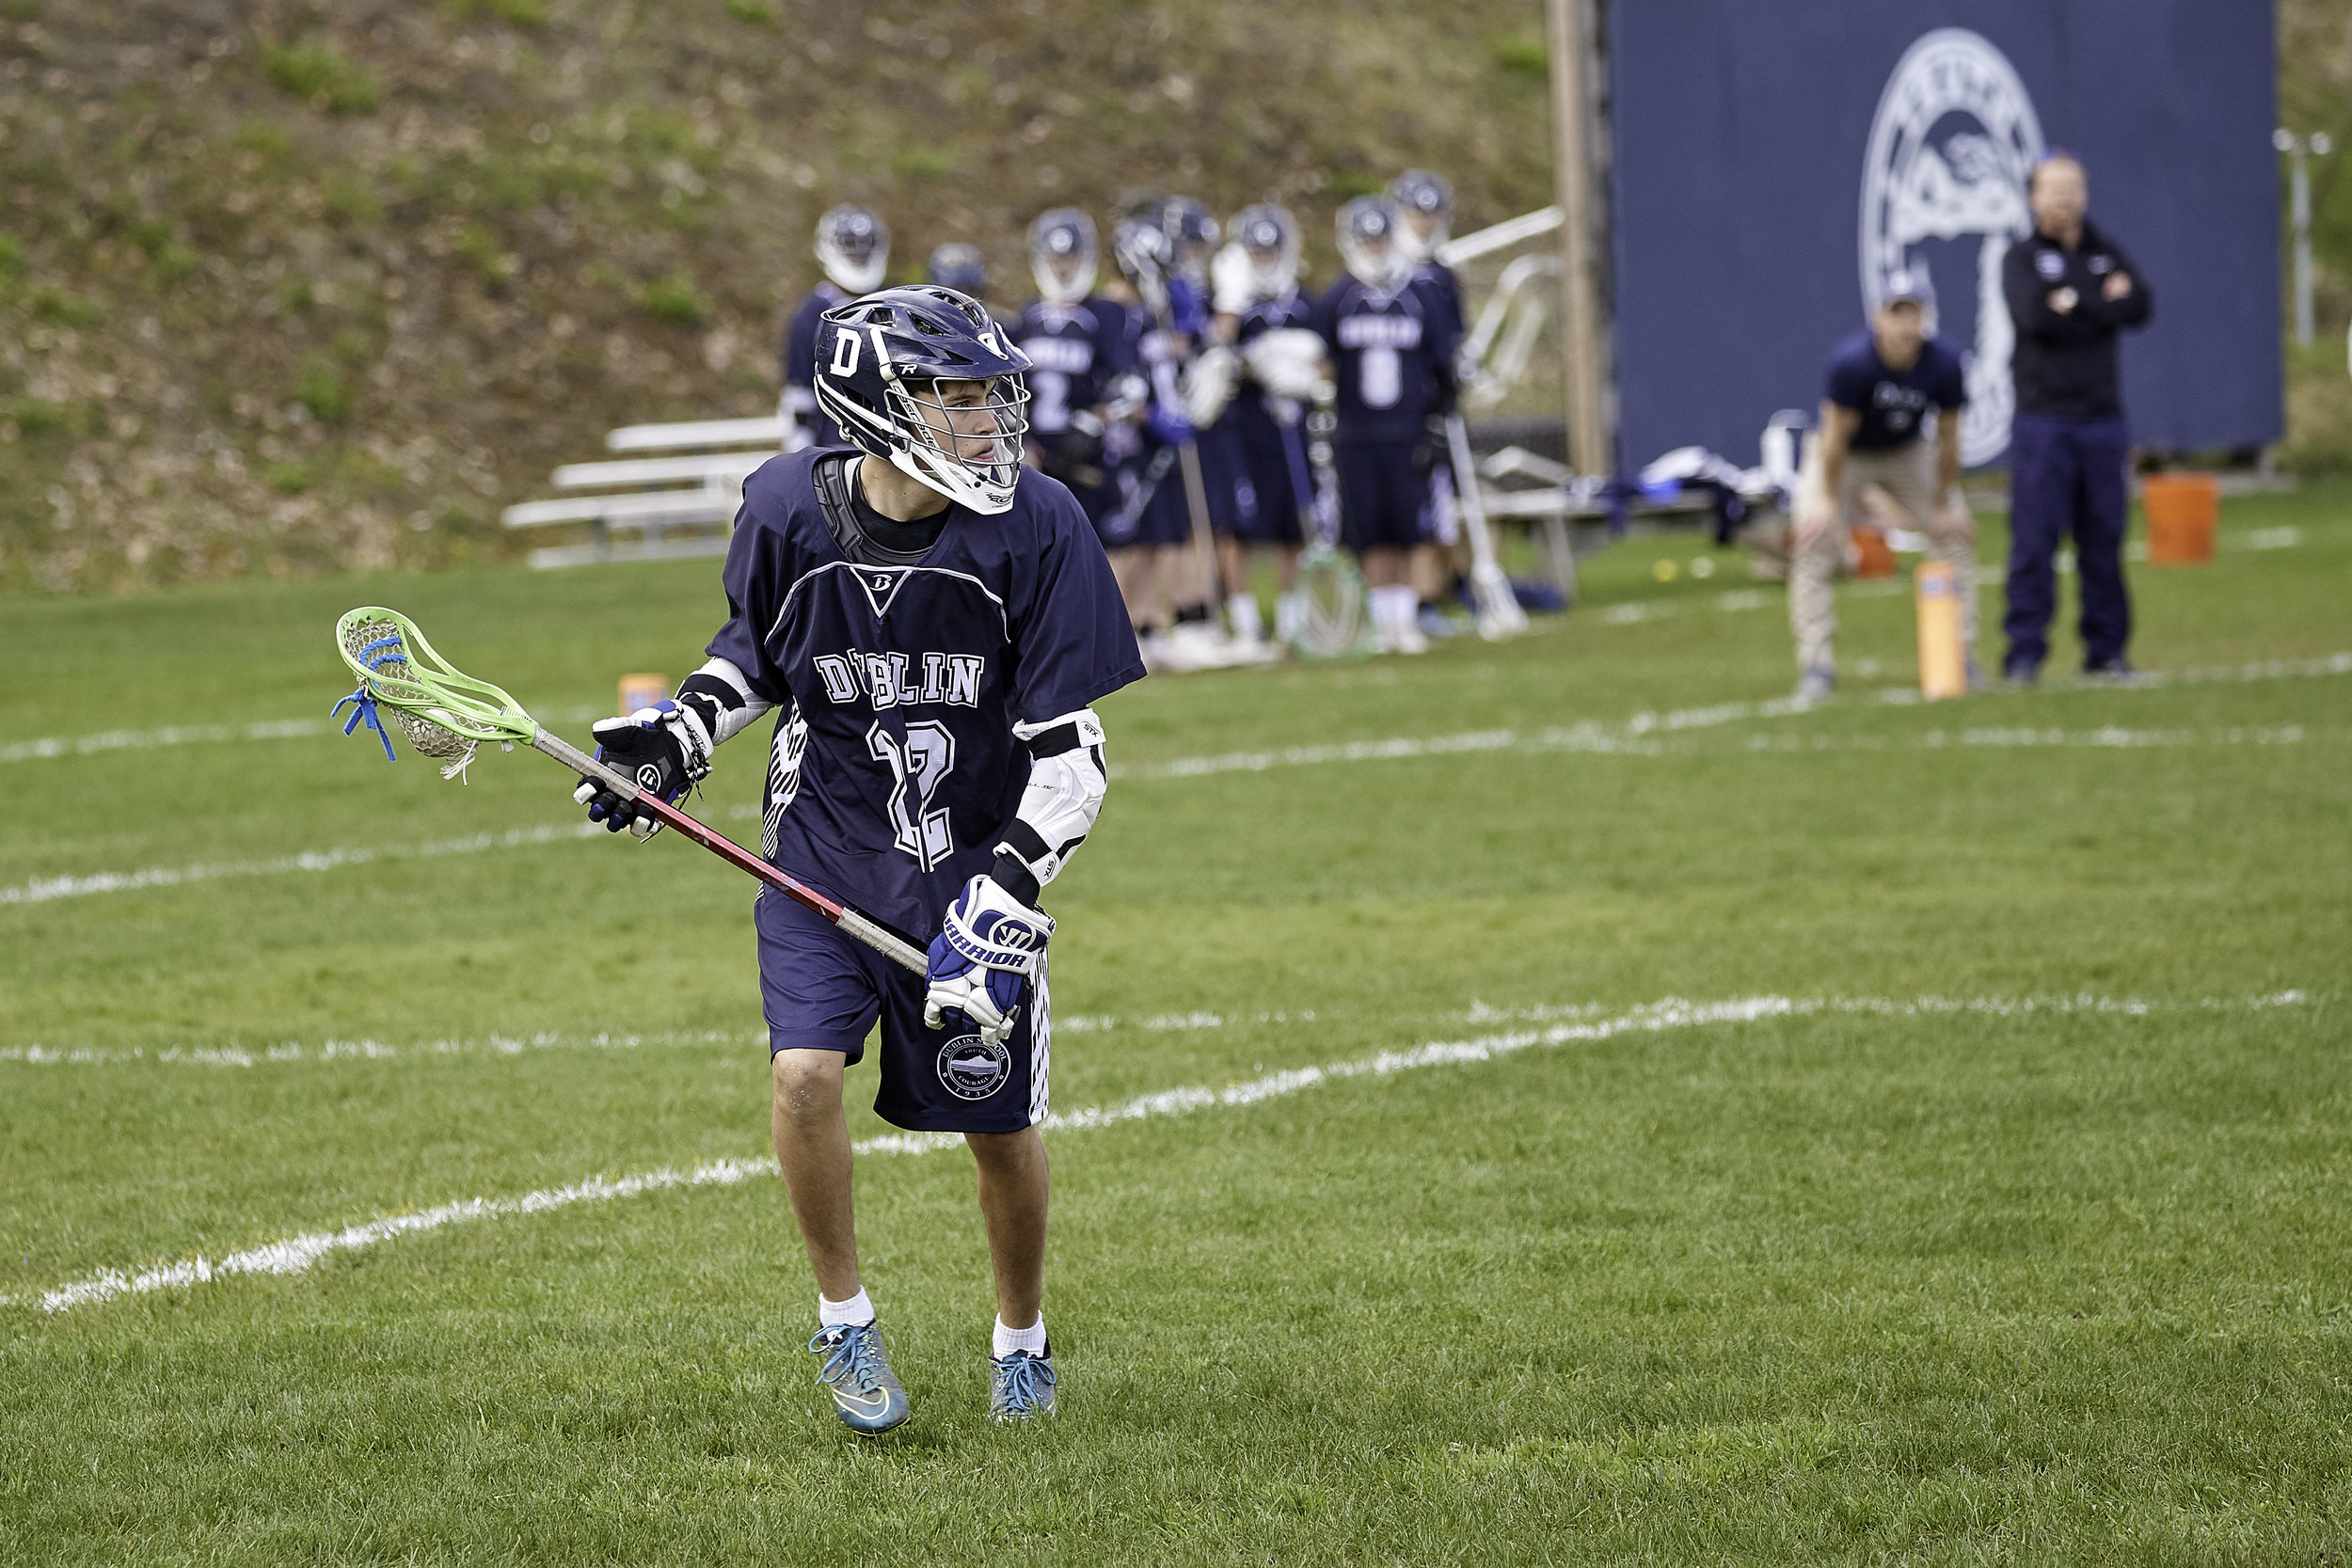 Boys Lax vs Northfield Mount Hermon JV - May 15 2019 - 0035.jpg